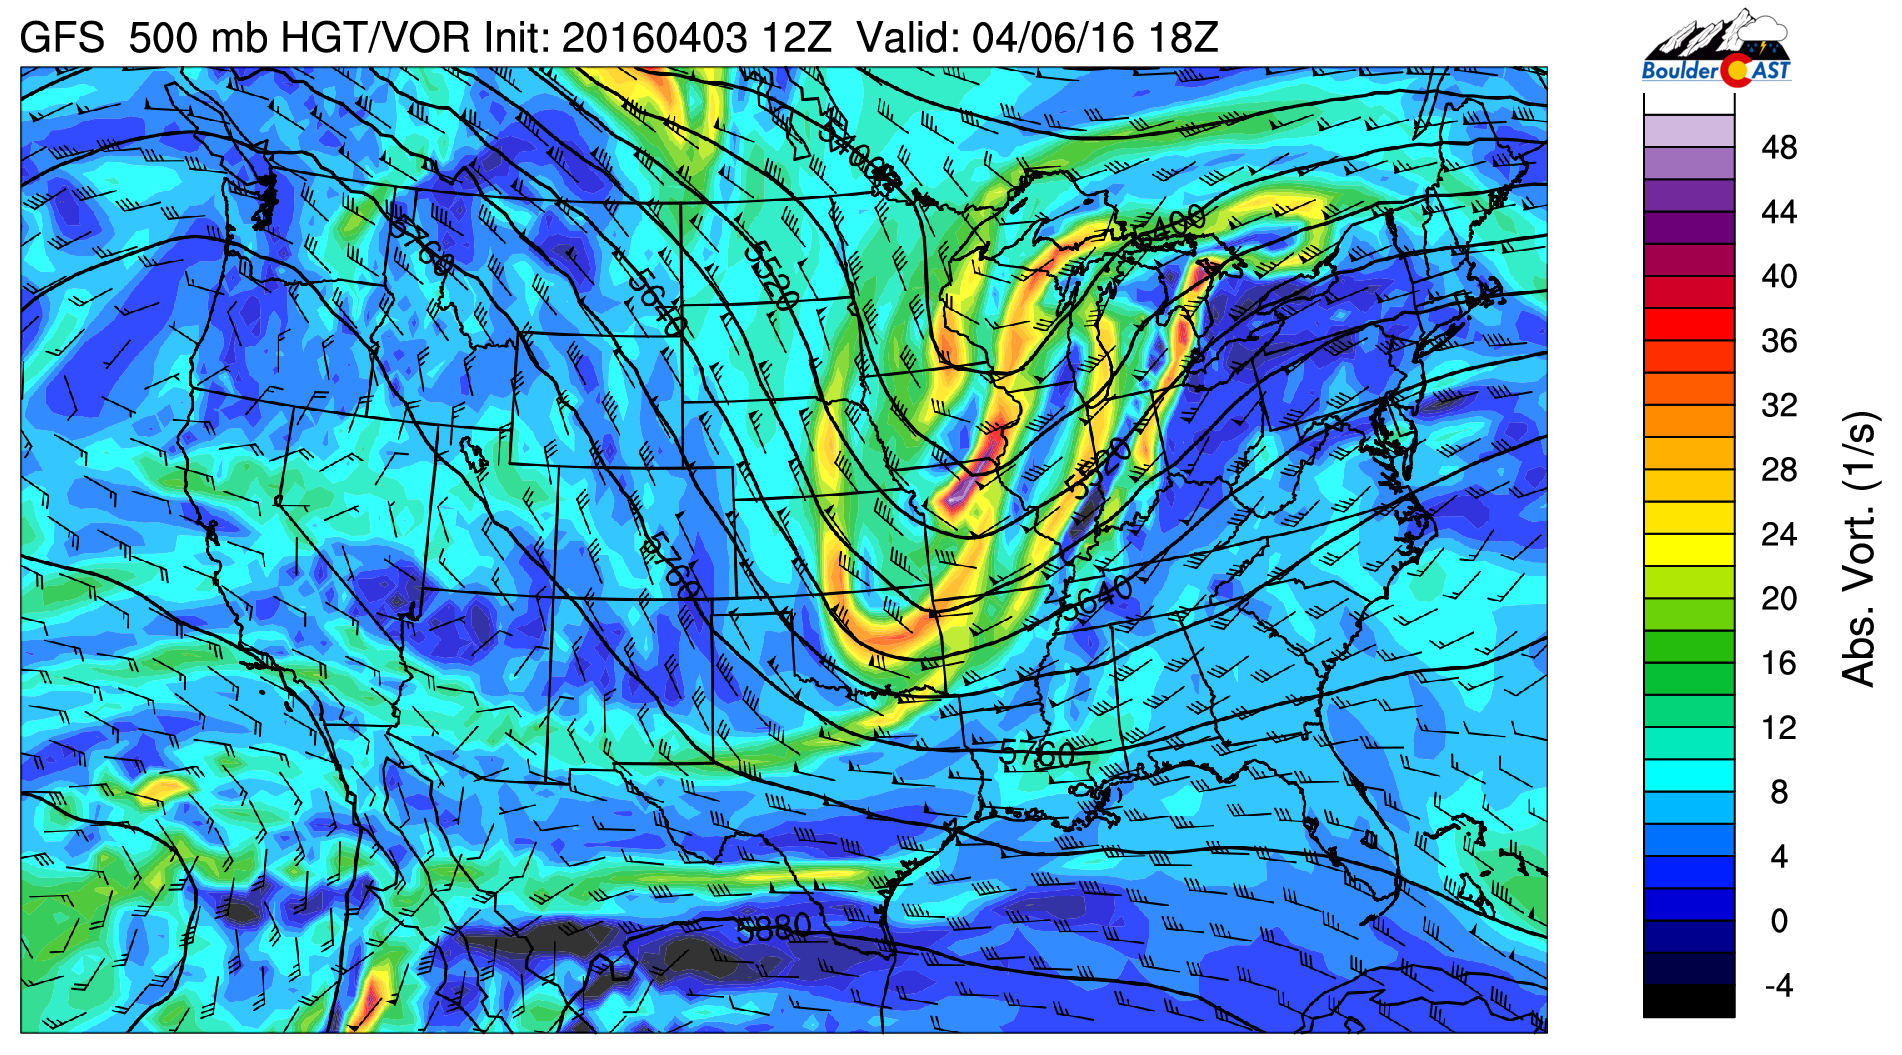 GFS 500 mb absolute vorticity for Wednesday